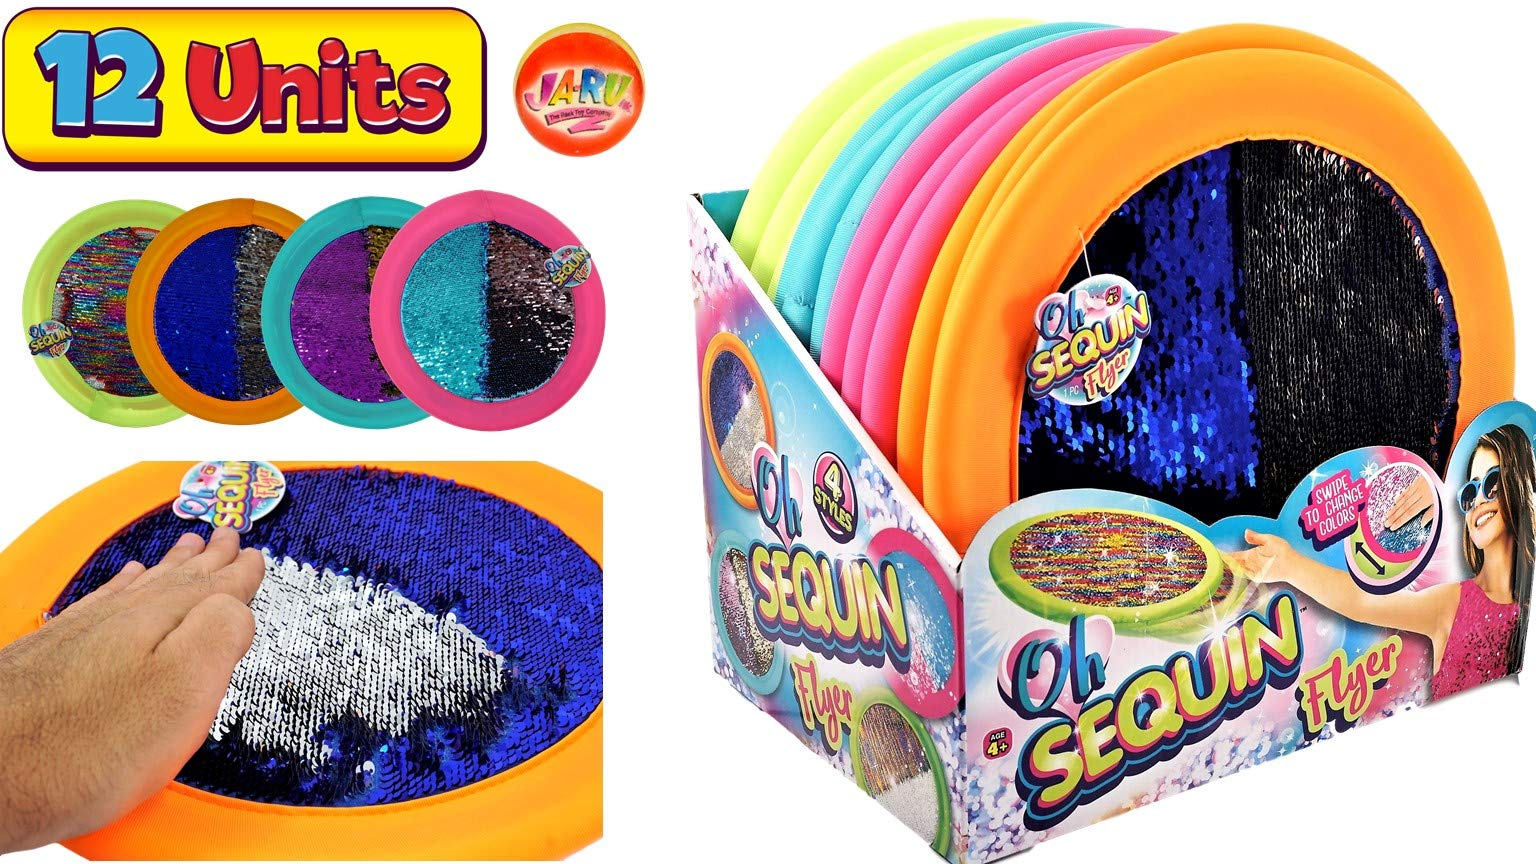 JA-RU Soft Flying Disc Wet or Dry Safe 11'' (12 Pack) Frisbees with Sequin Shimmery Material, Kids & Adults Toys Games for Beach Lake Pool Playground & Outdoors Party Plus 1 Bouncy Ball. 4637-12P by JA-RU